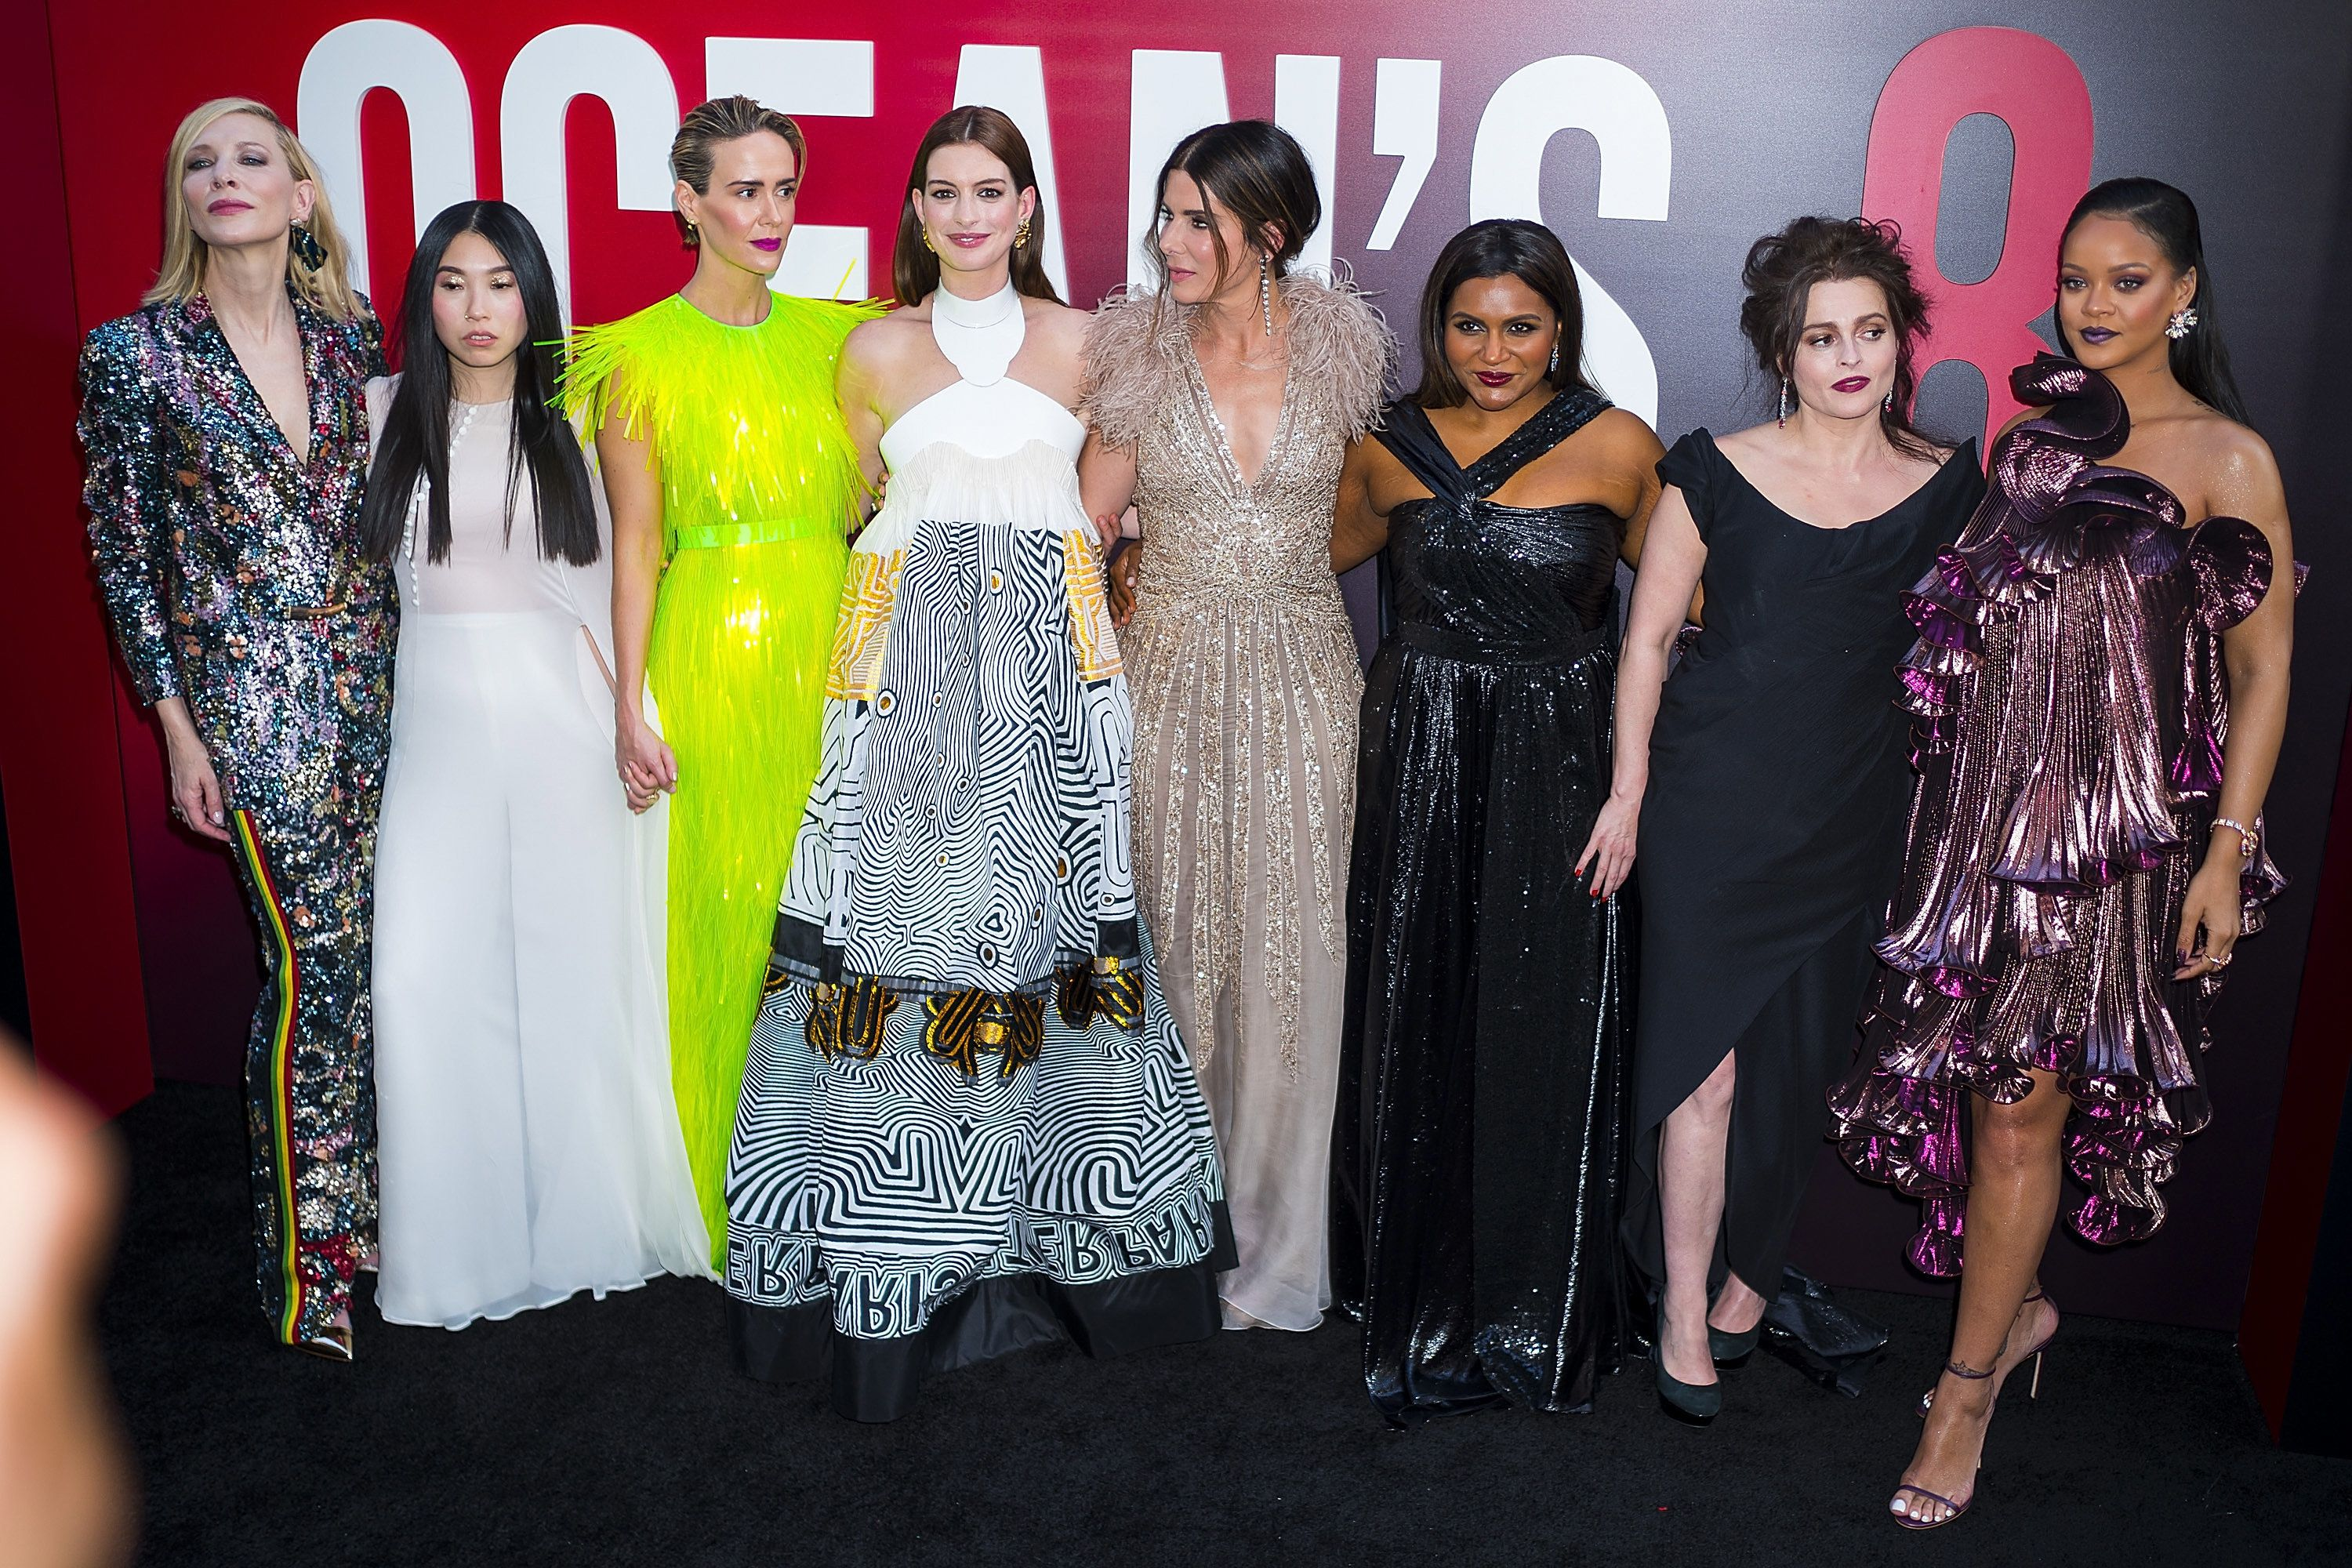 NEW YORK, NY - JUNE 05:  (L-R) Cate Blanchett, Awkwafina, Sarah Paulson, Anne Hathaway, Sandra Bullock, Mindy Kaling, Helena Bonham Carter and Rihanna attend the 'Ocean's 8' World Premiere at Alice Tully Hall on June 5, 2018 in New York City.  (Photo by Michael Stewart/WireImage)